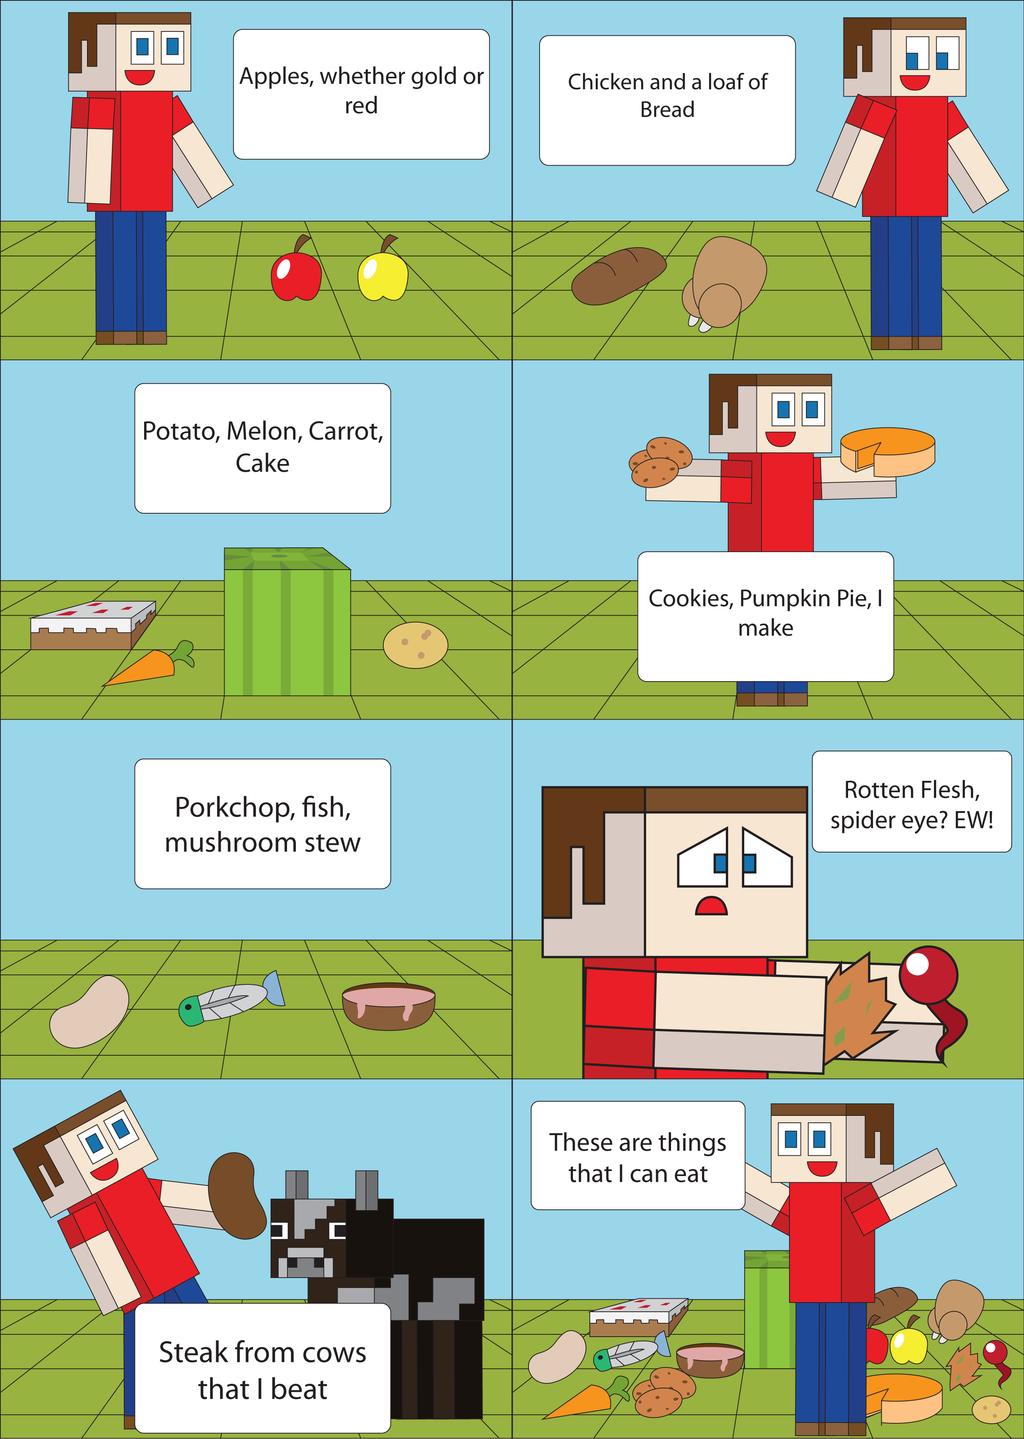 Things you can eat in Minecraft